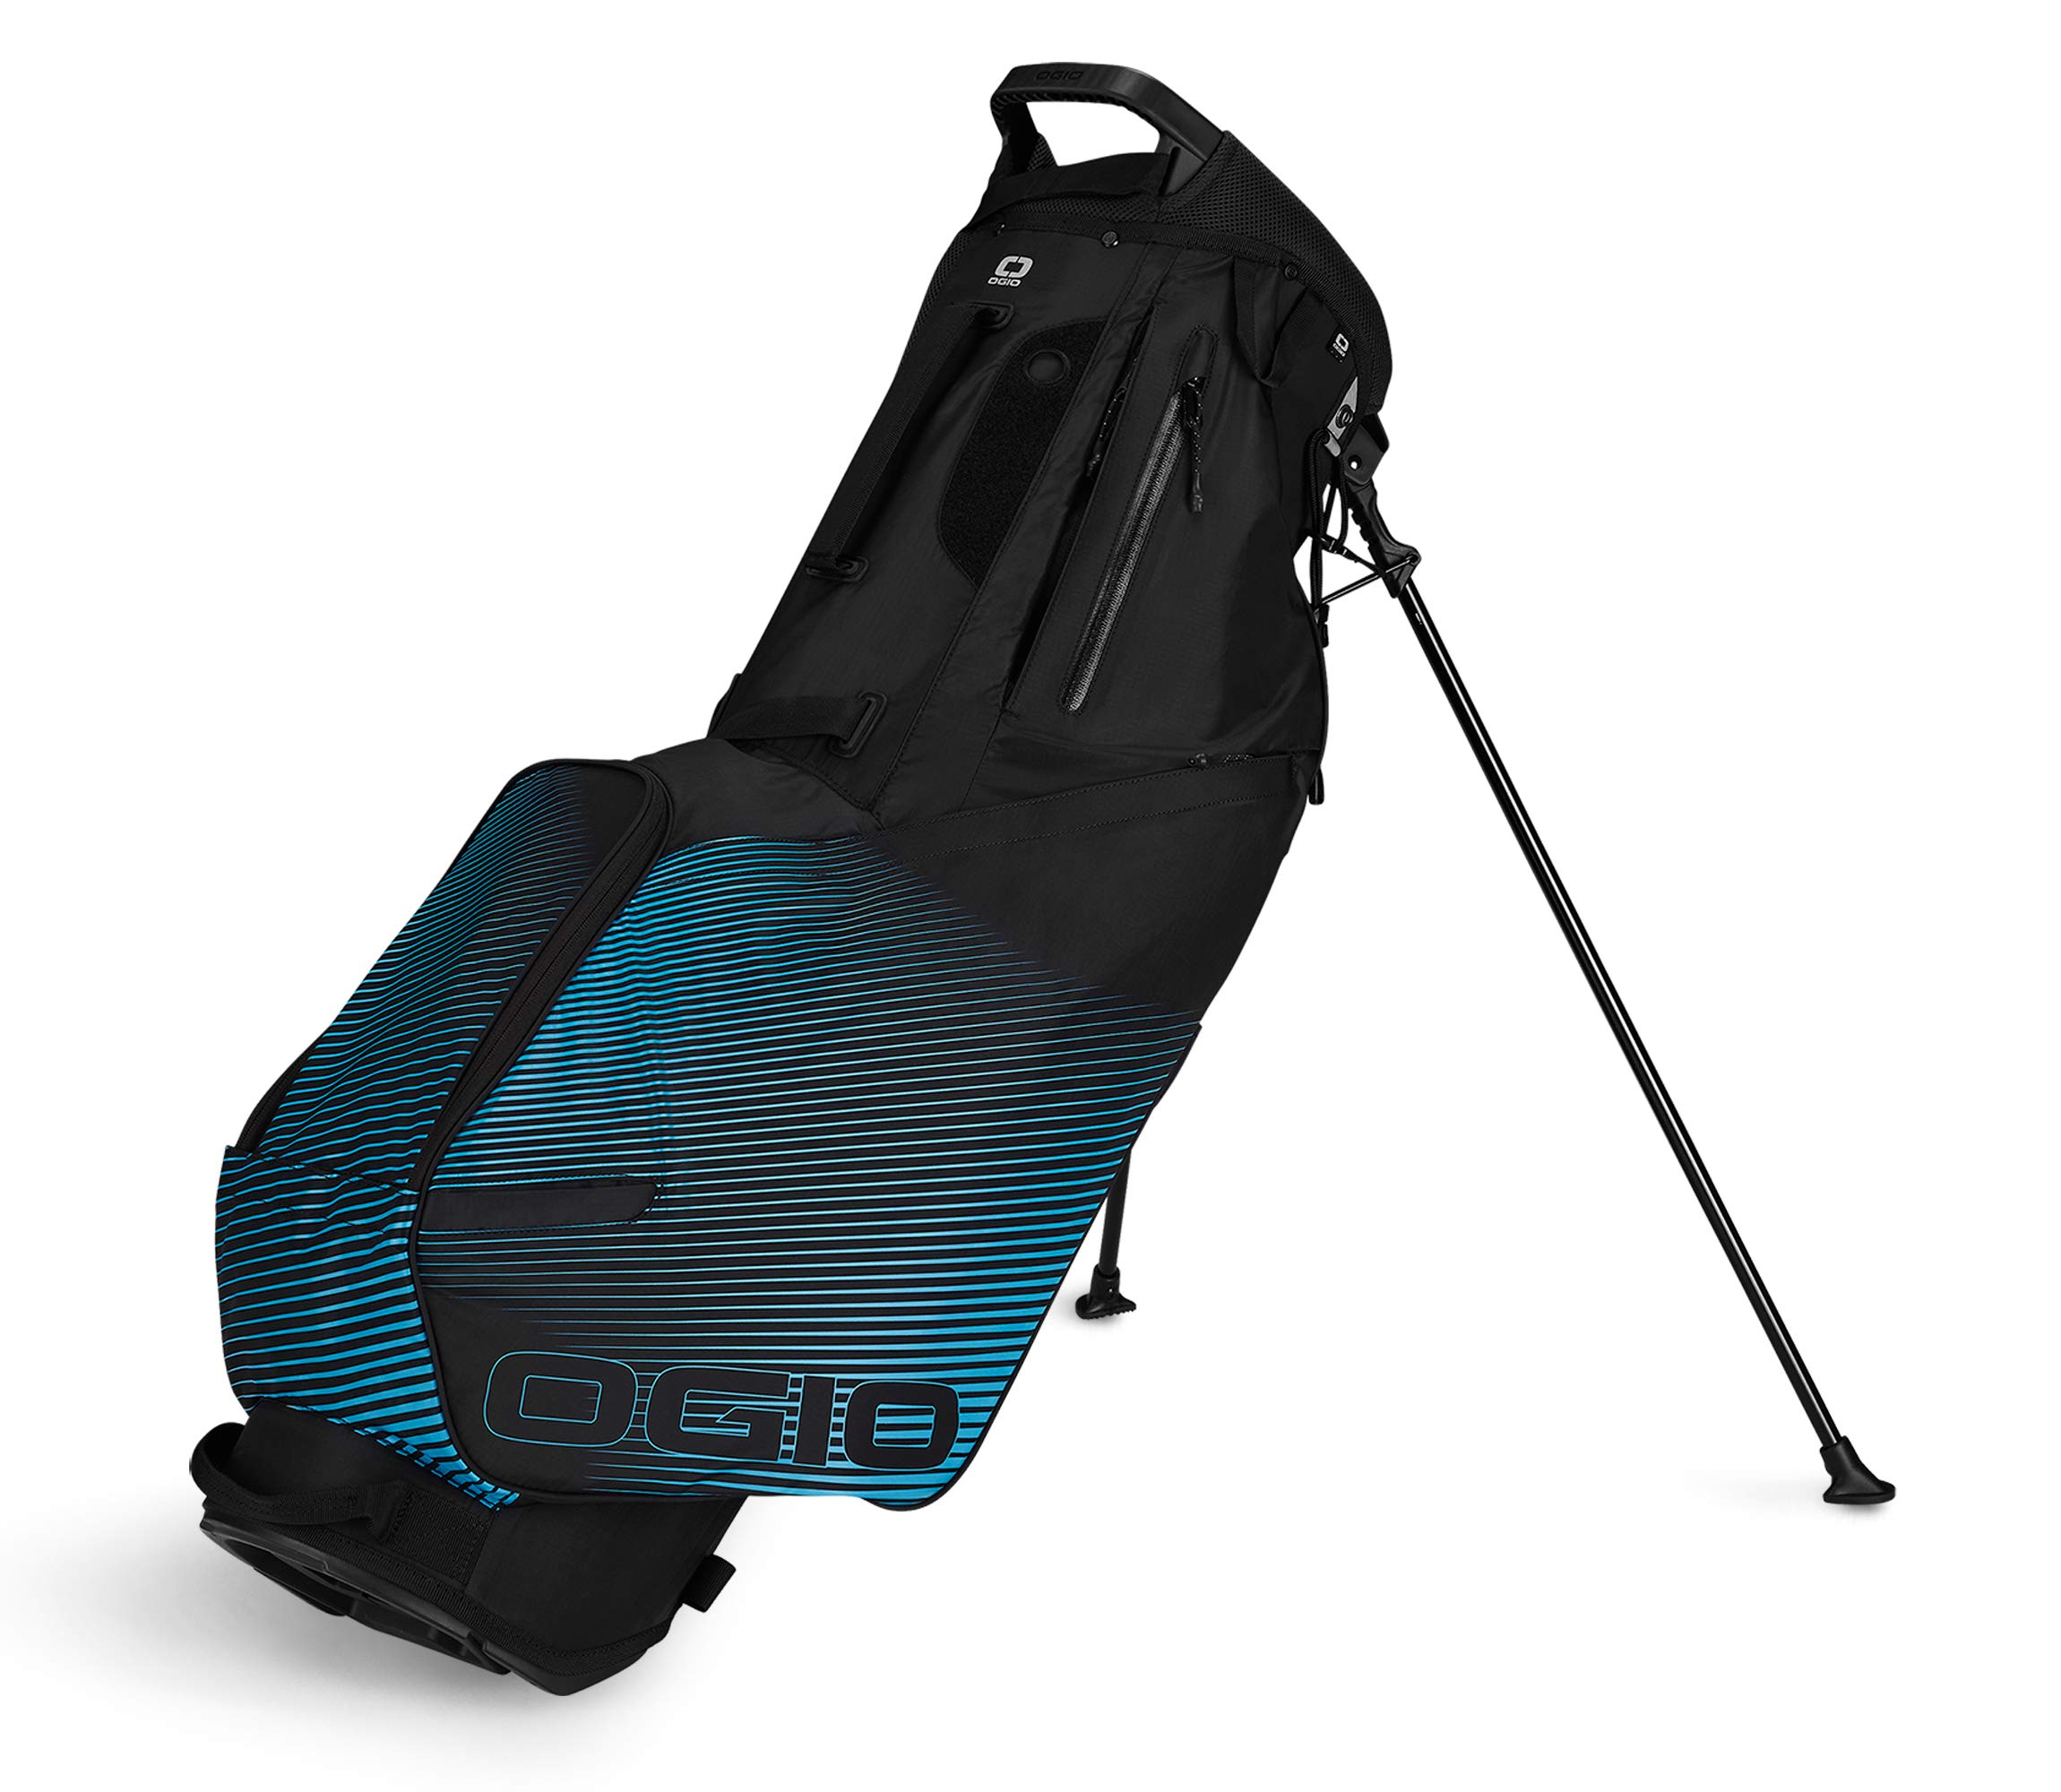 OGIO SHADOW Fuse 304 Golf Stand Bag, Perigrine